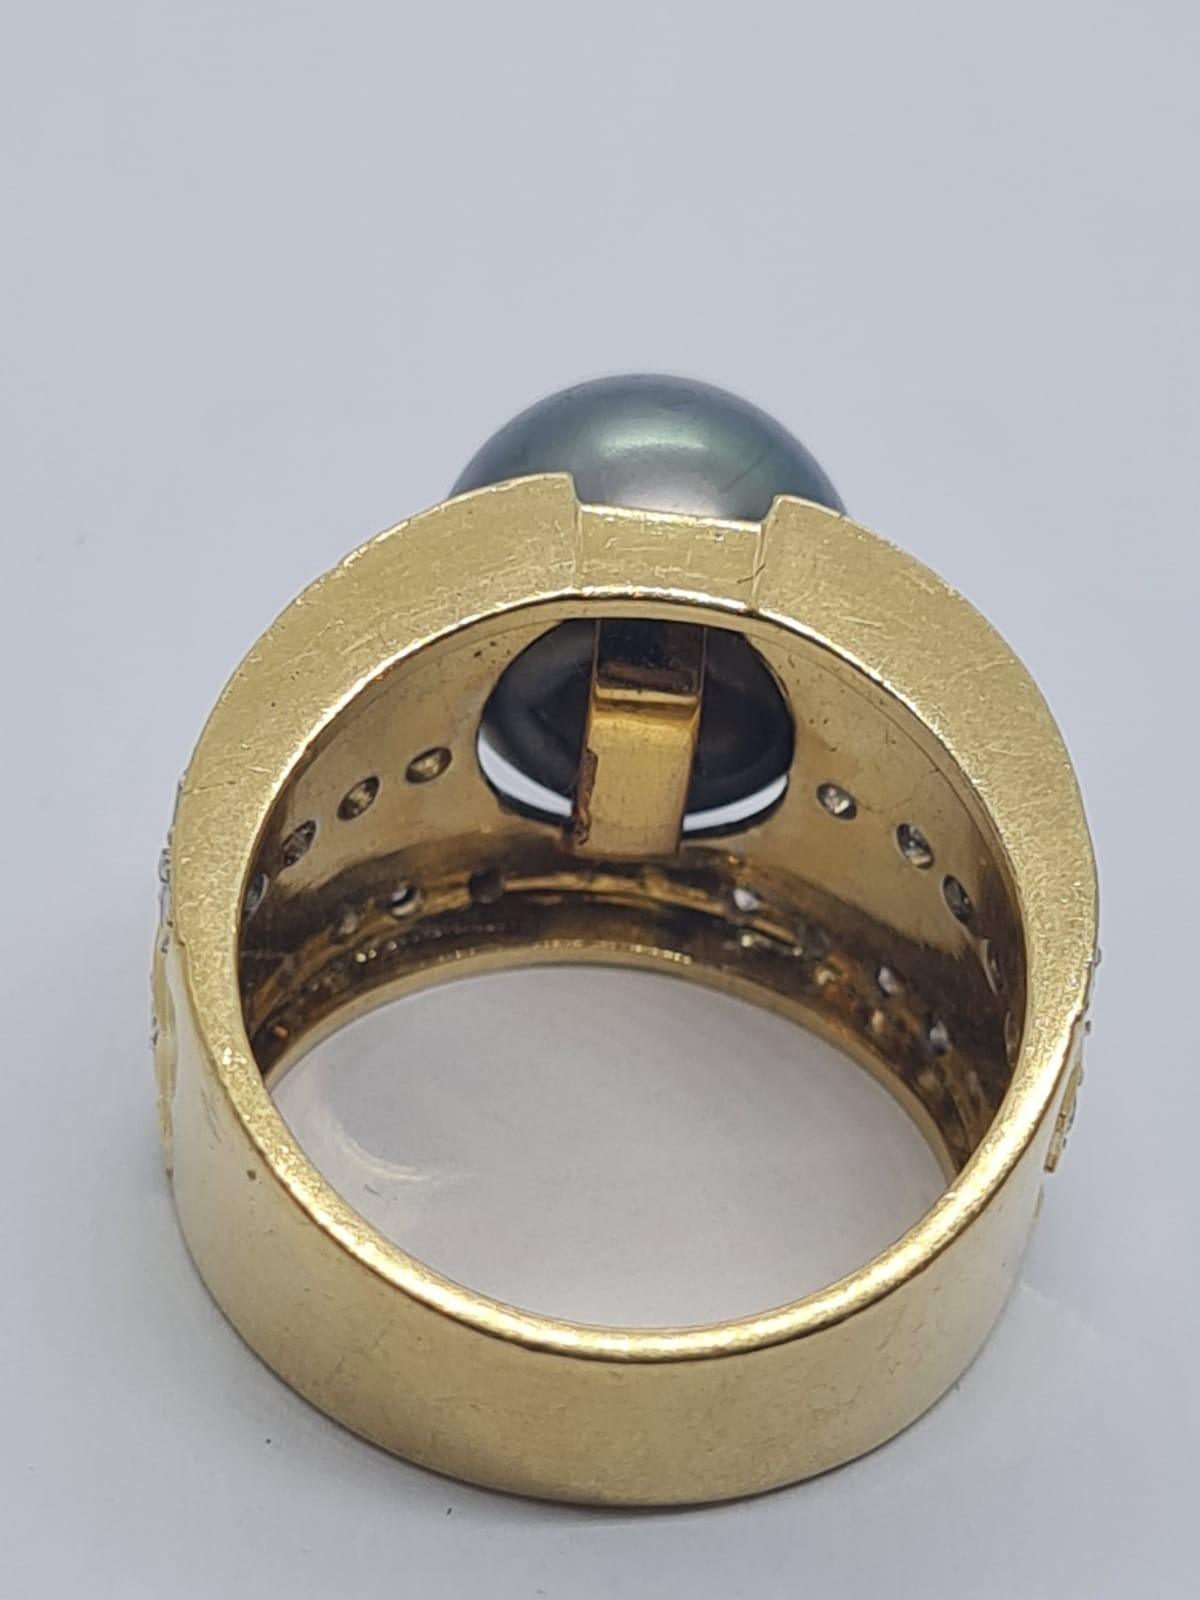 18k yellow gold with Tahitian pearl centre and decorated with 1.50ct diamonds approx, weight 12.8g - Image 9 of 9